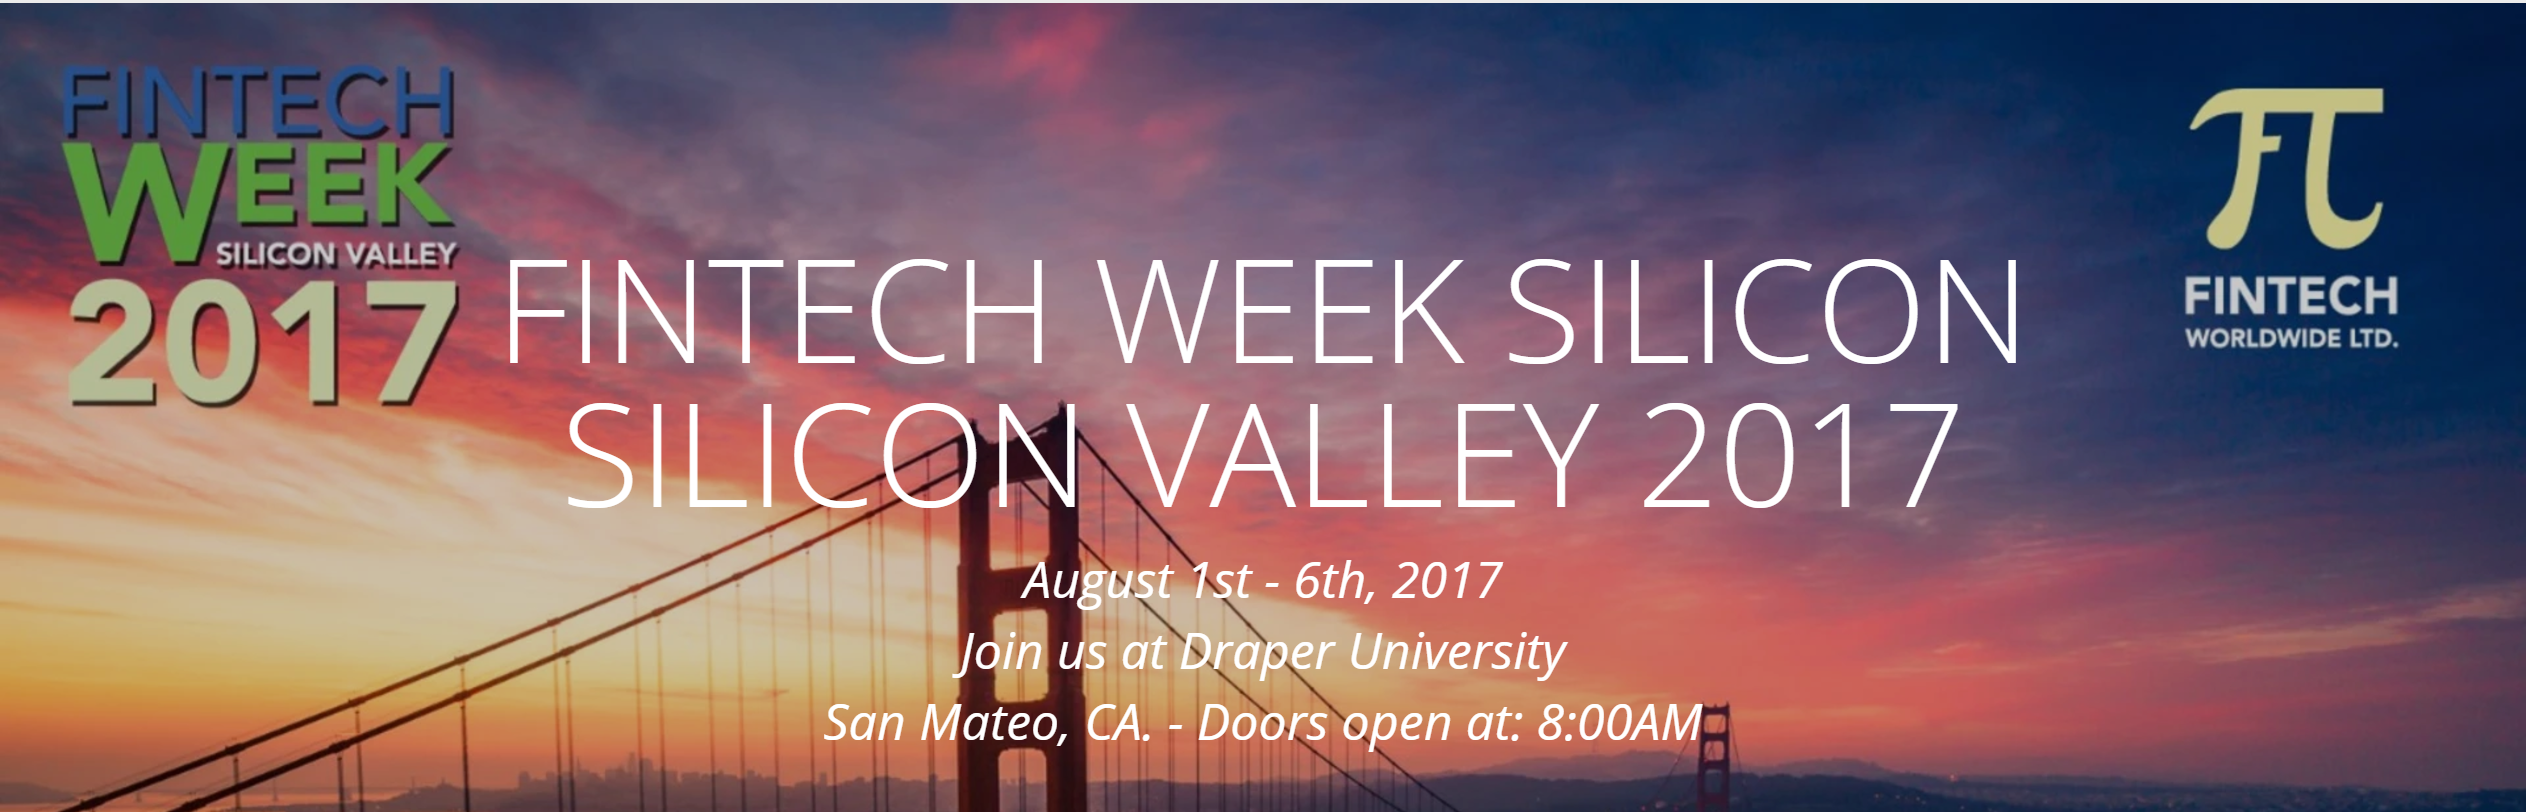 Silicon Valley Fintech Week 2017